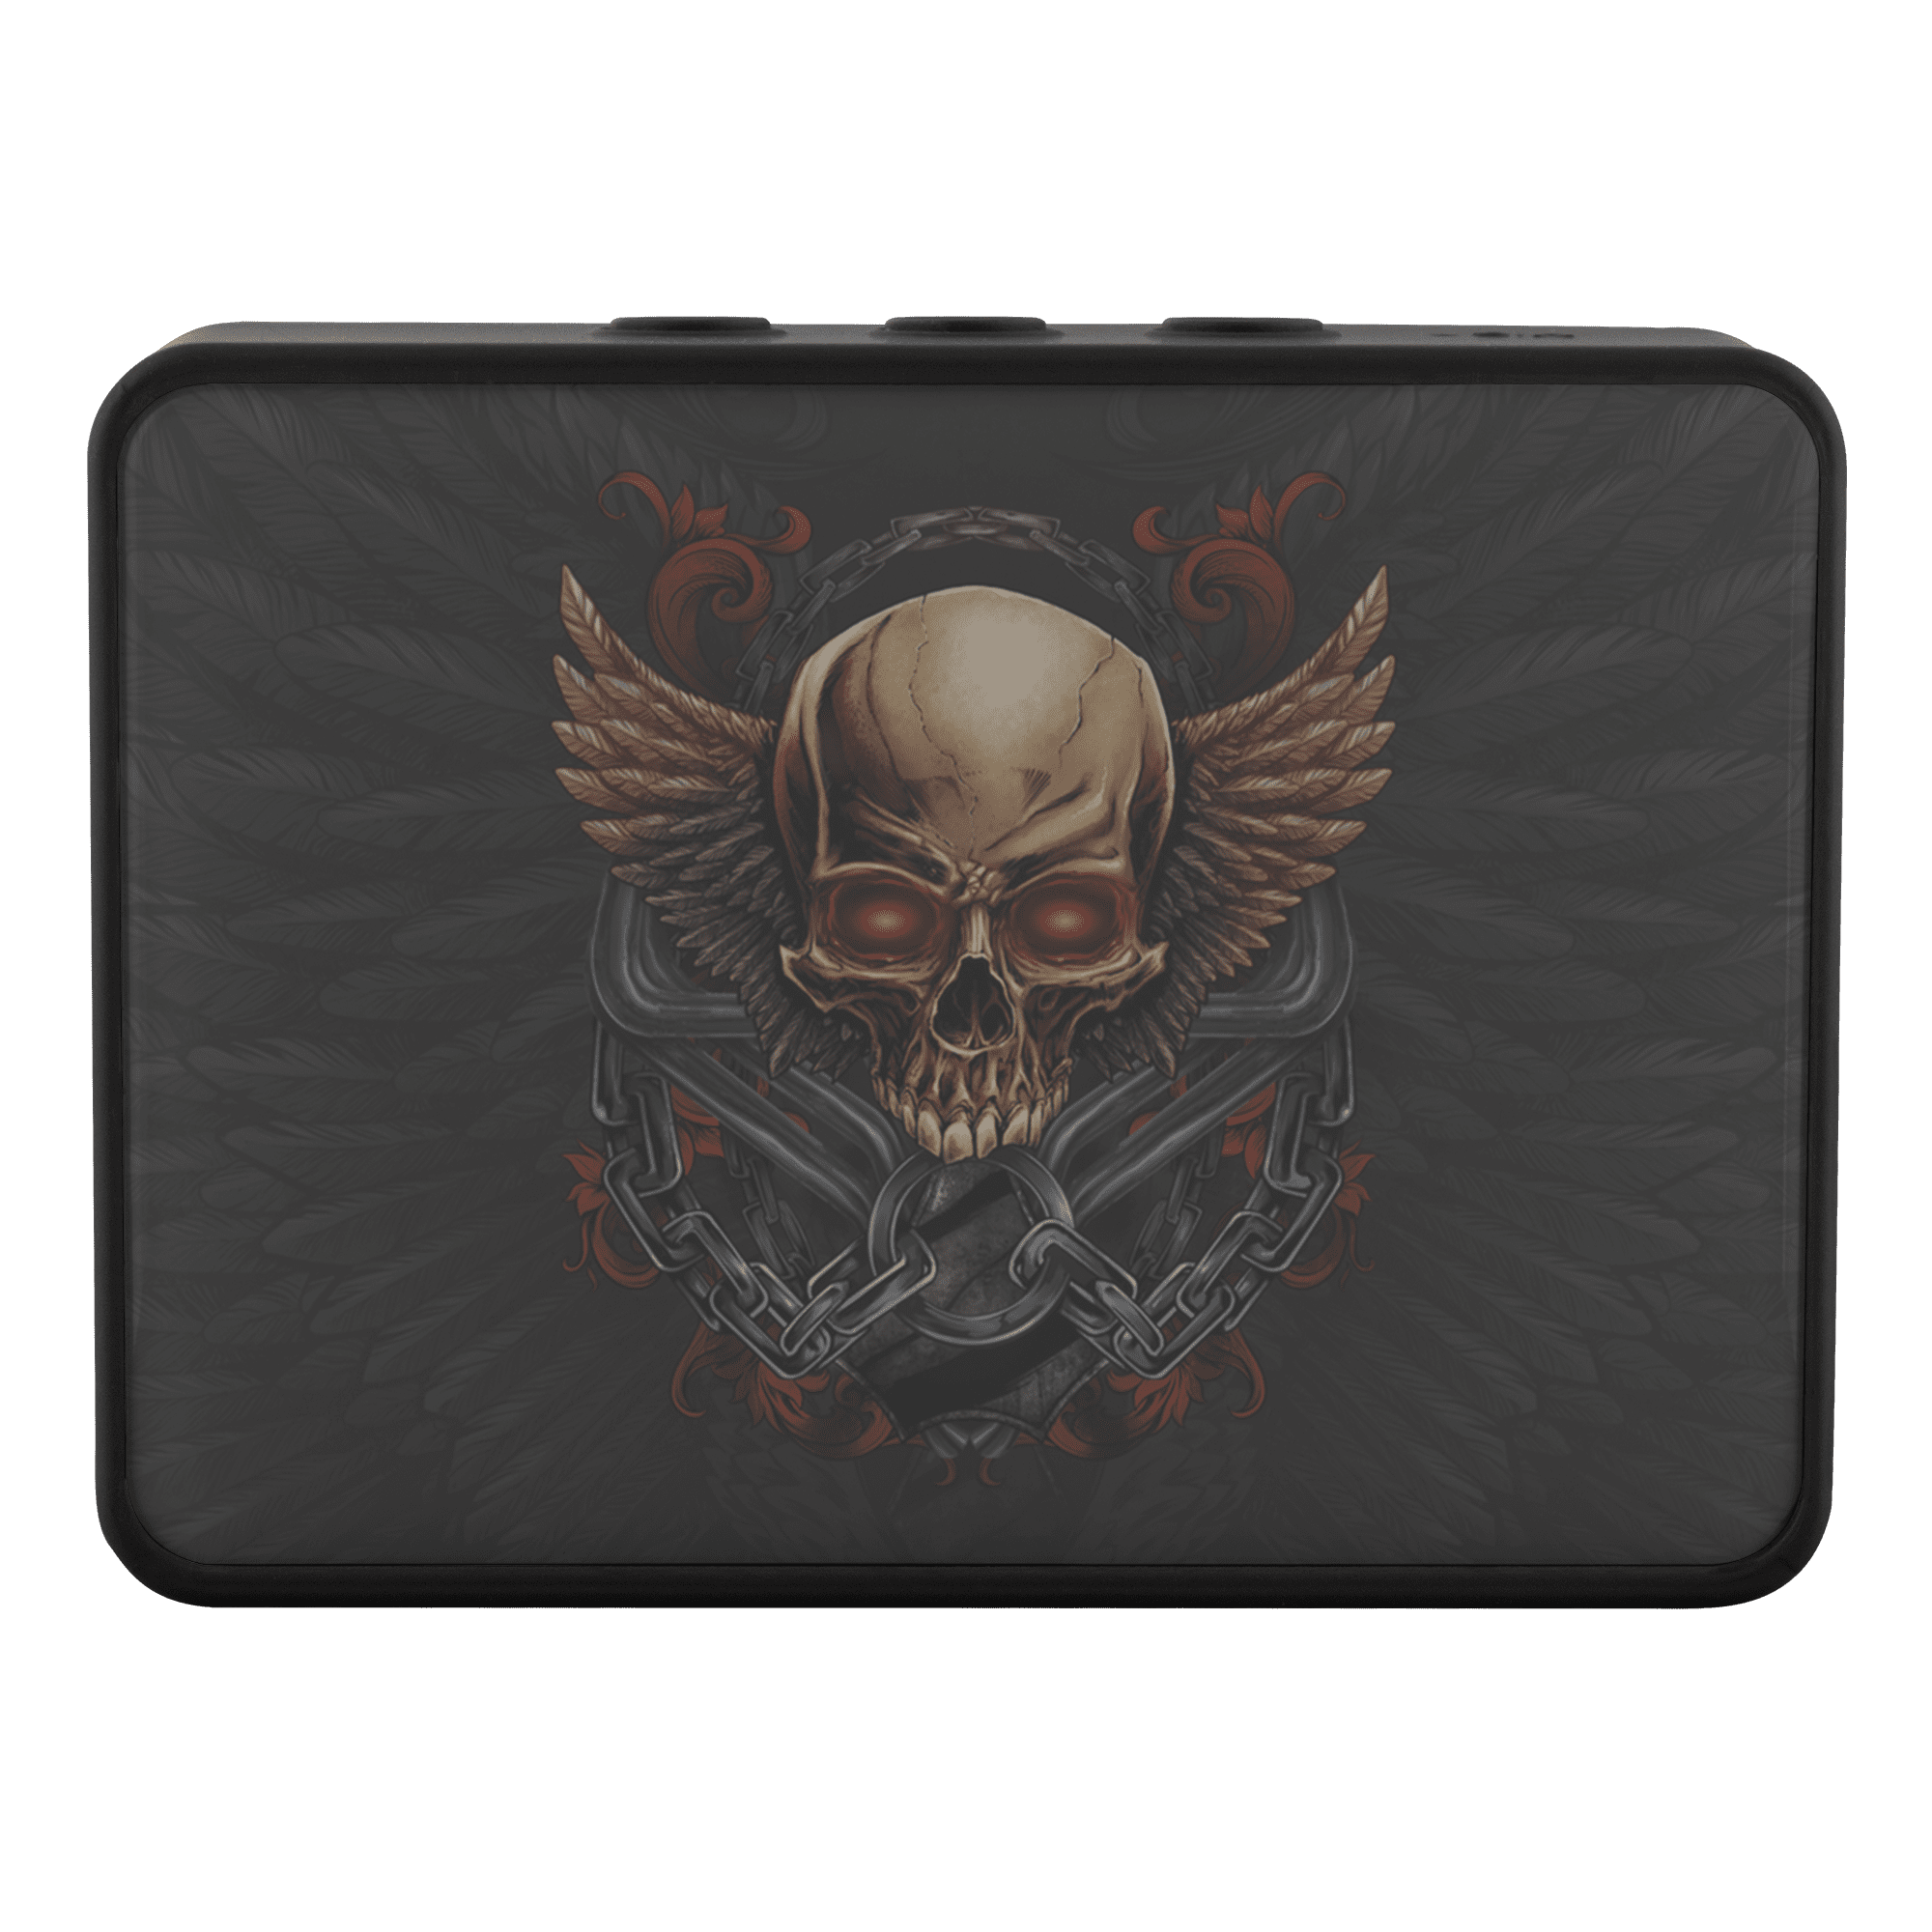 Skull & Wings Portable Bluetooth Speaker